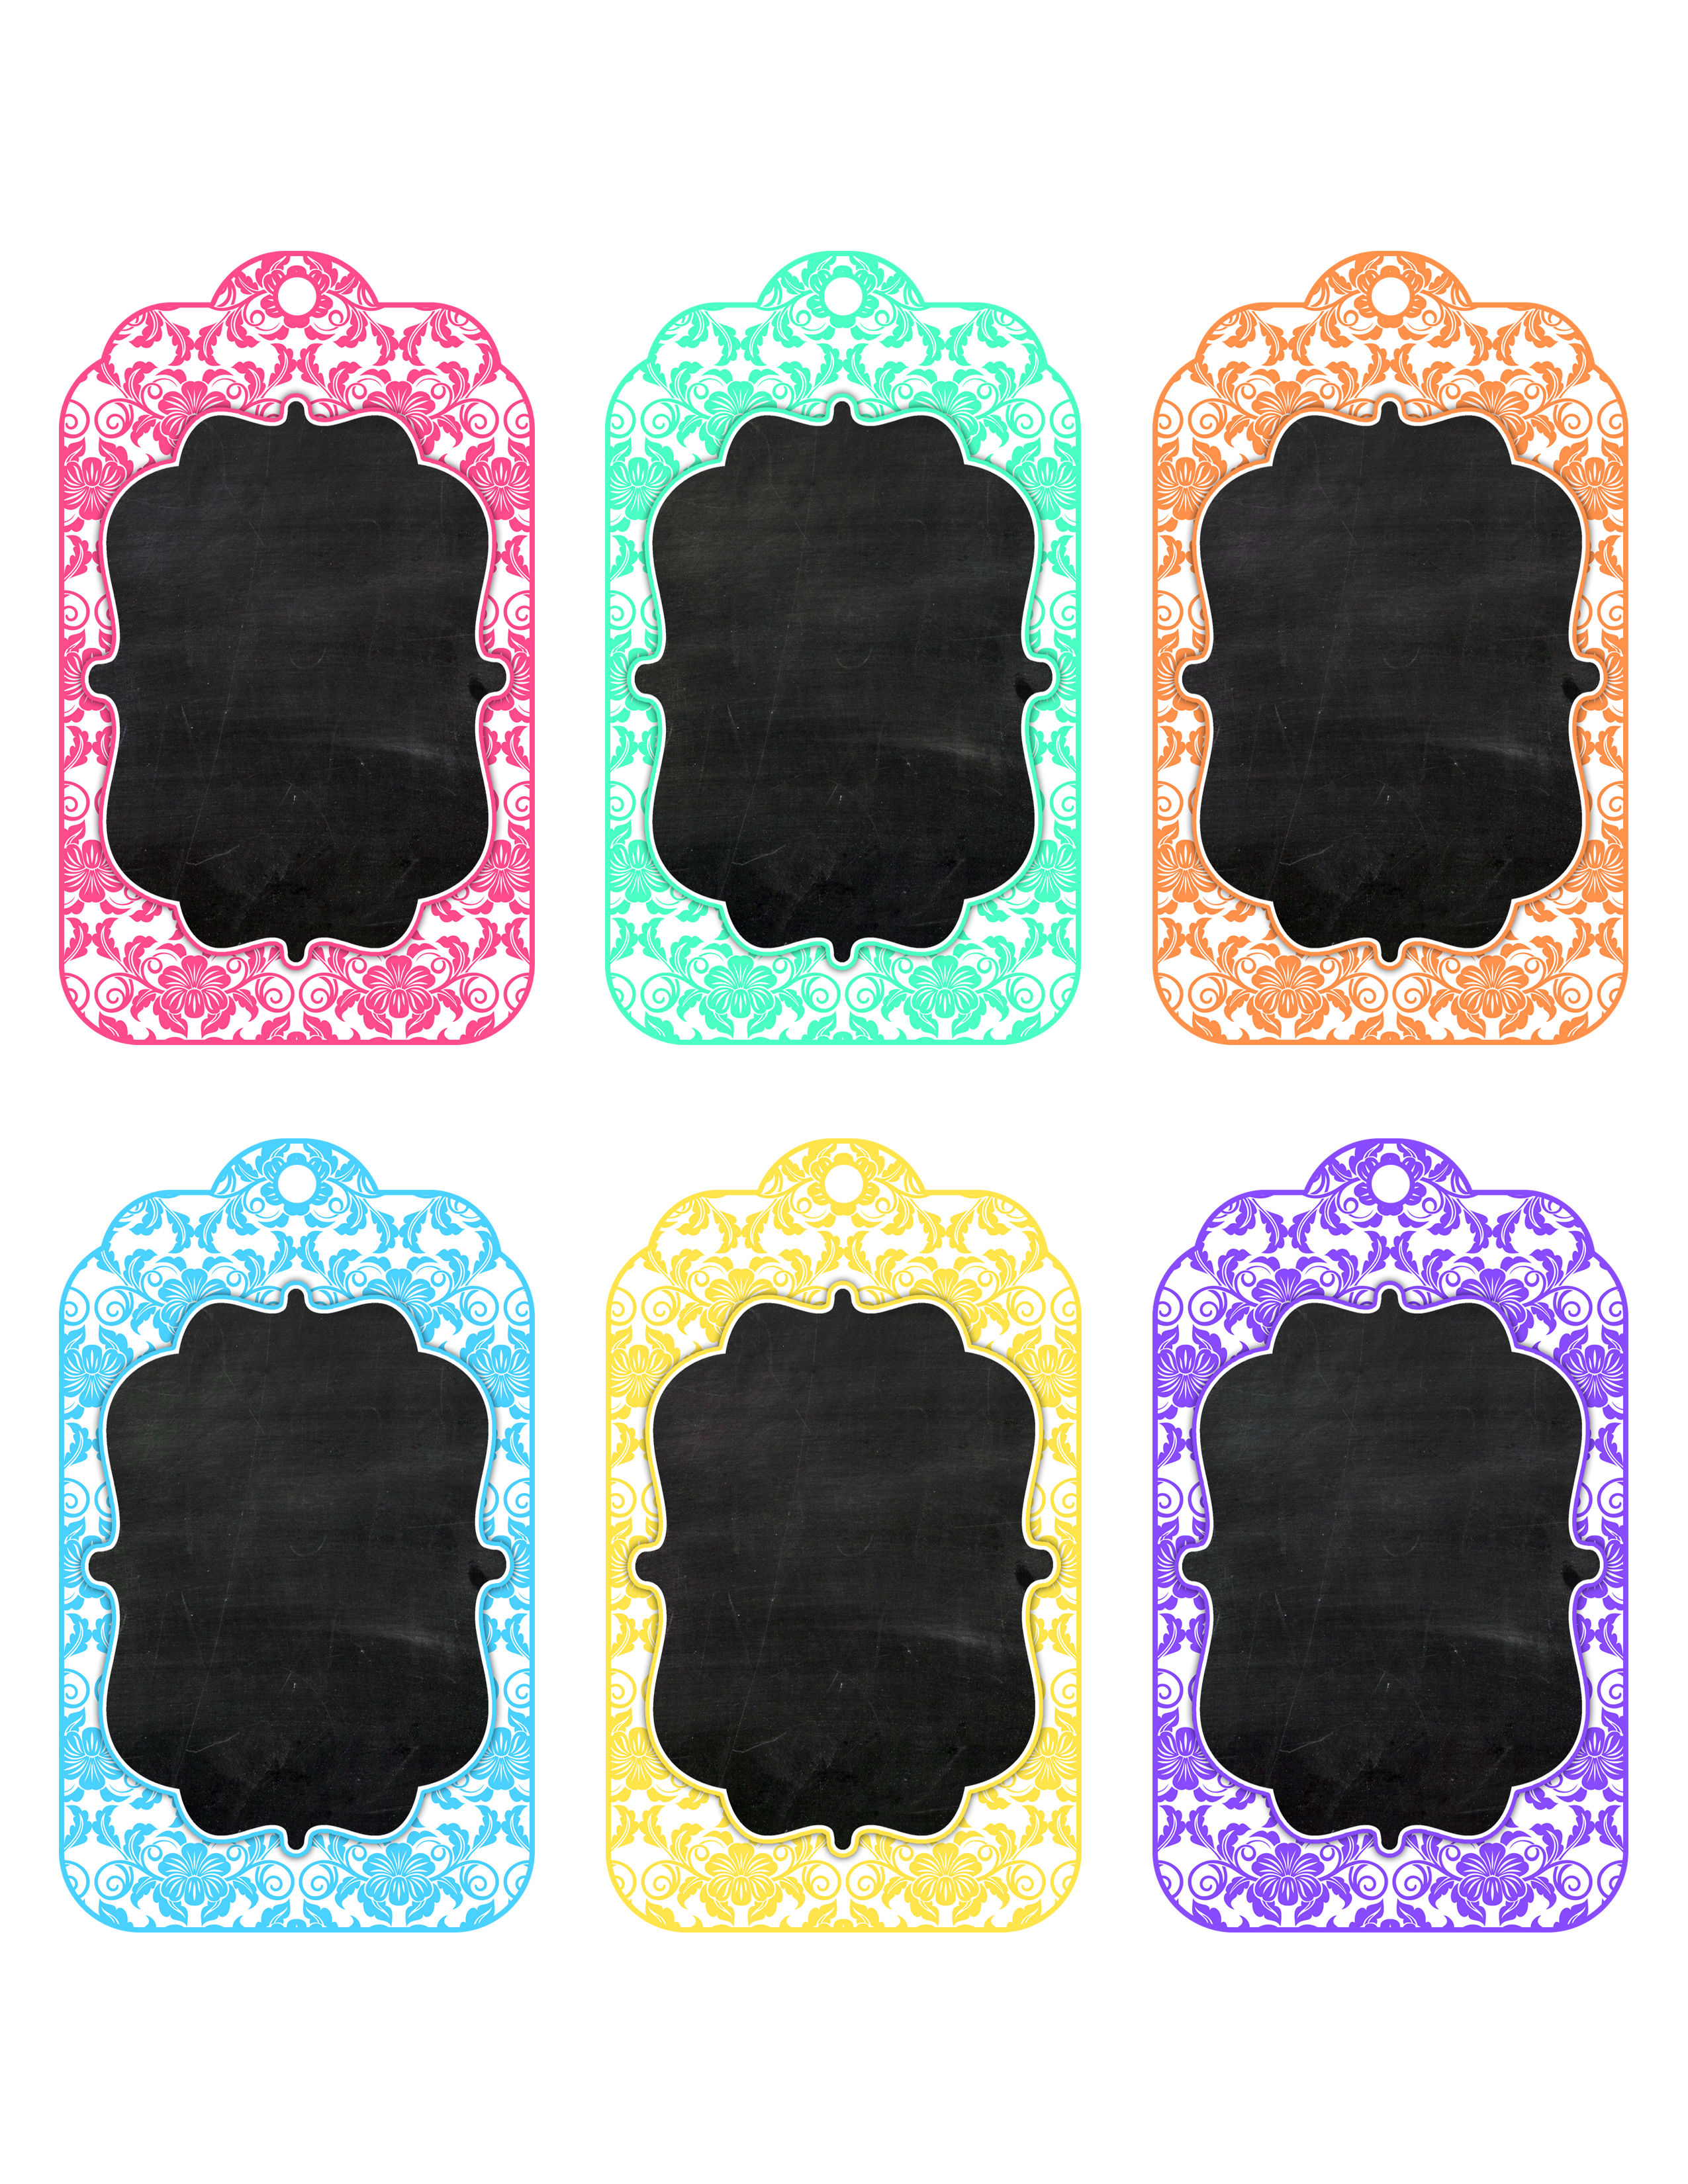 It's just a picture of Free Printable Chalkboard Labels in five senses gift